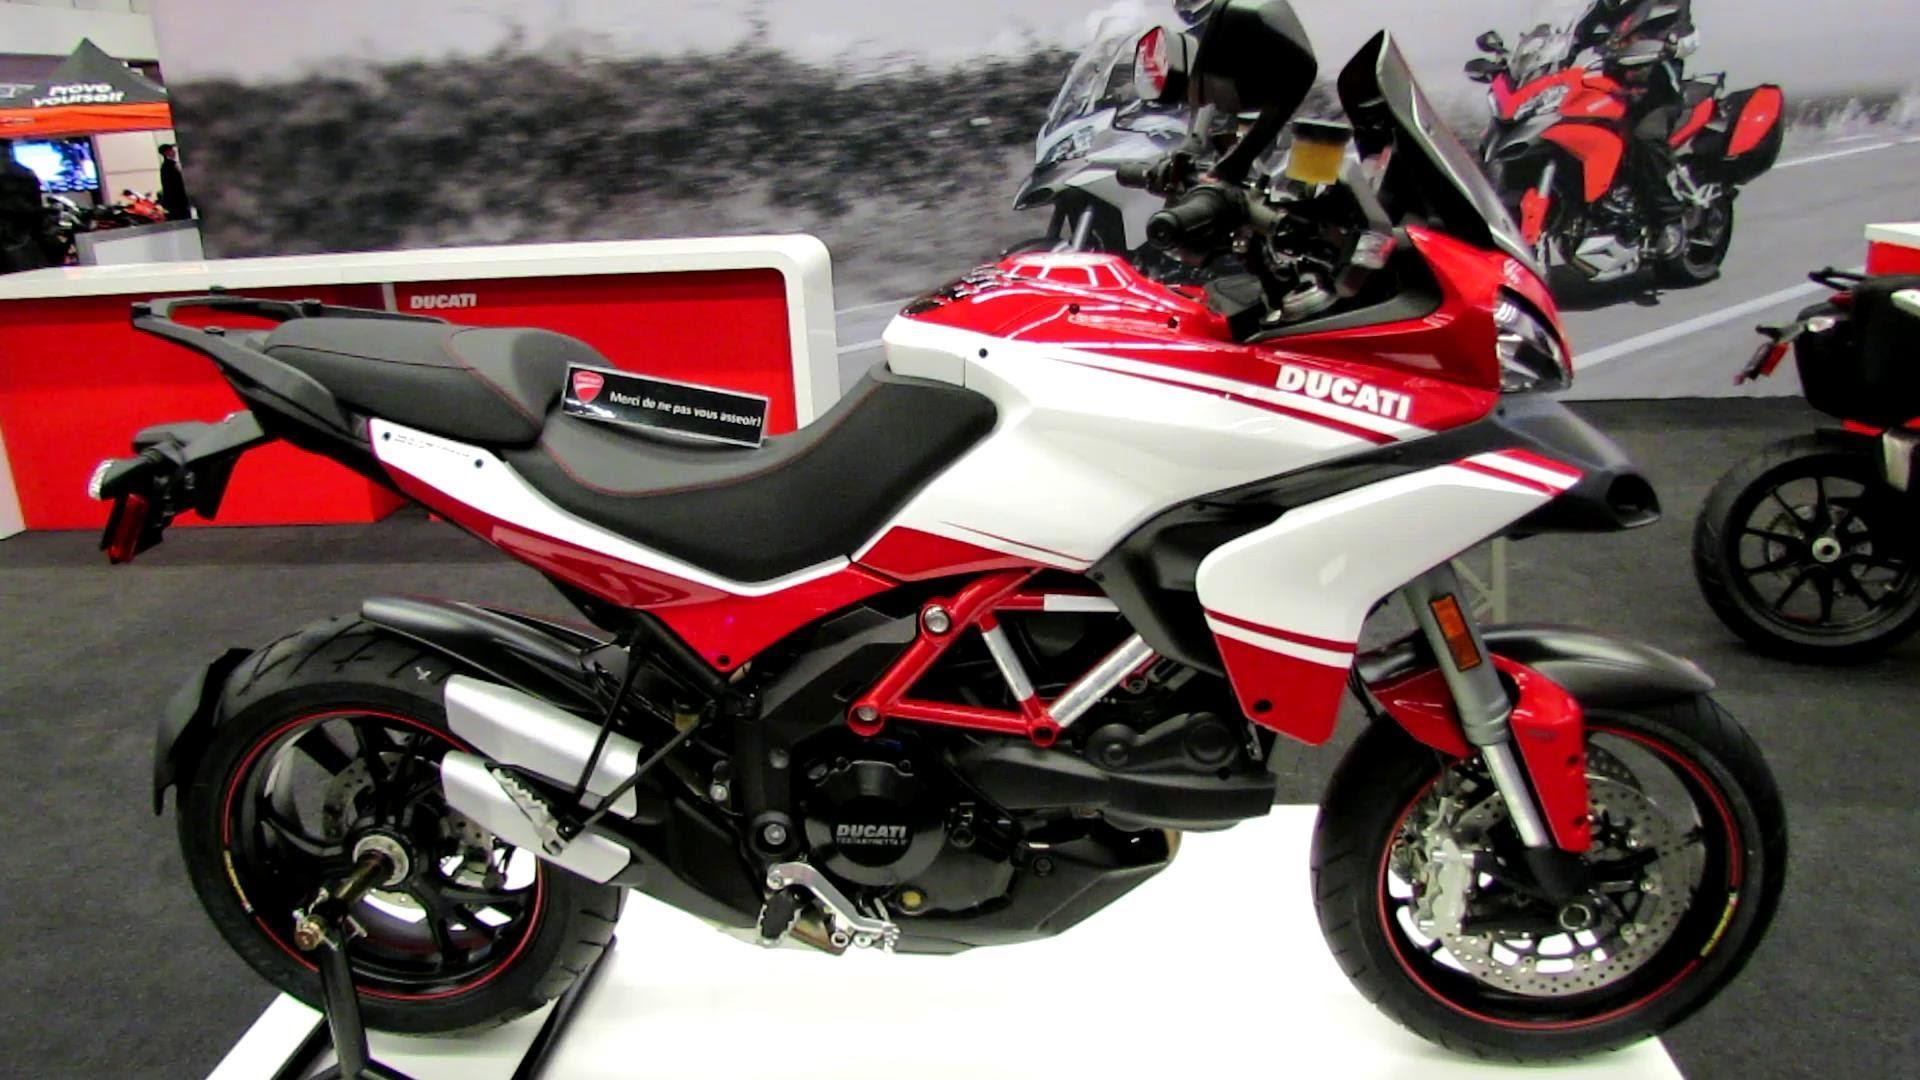 Ducati Multistrada 1200 S Pikes Peak Edition 2013 images #80023